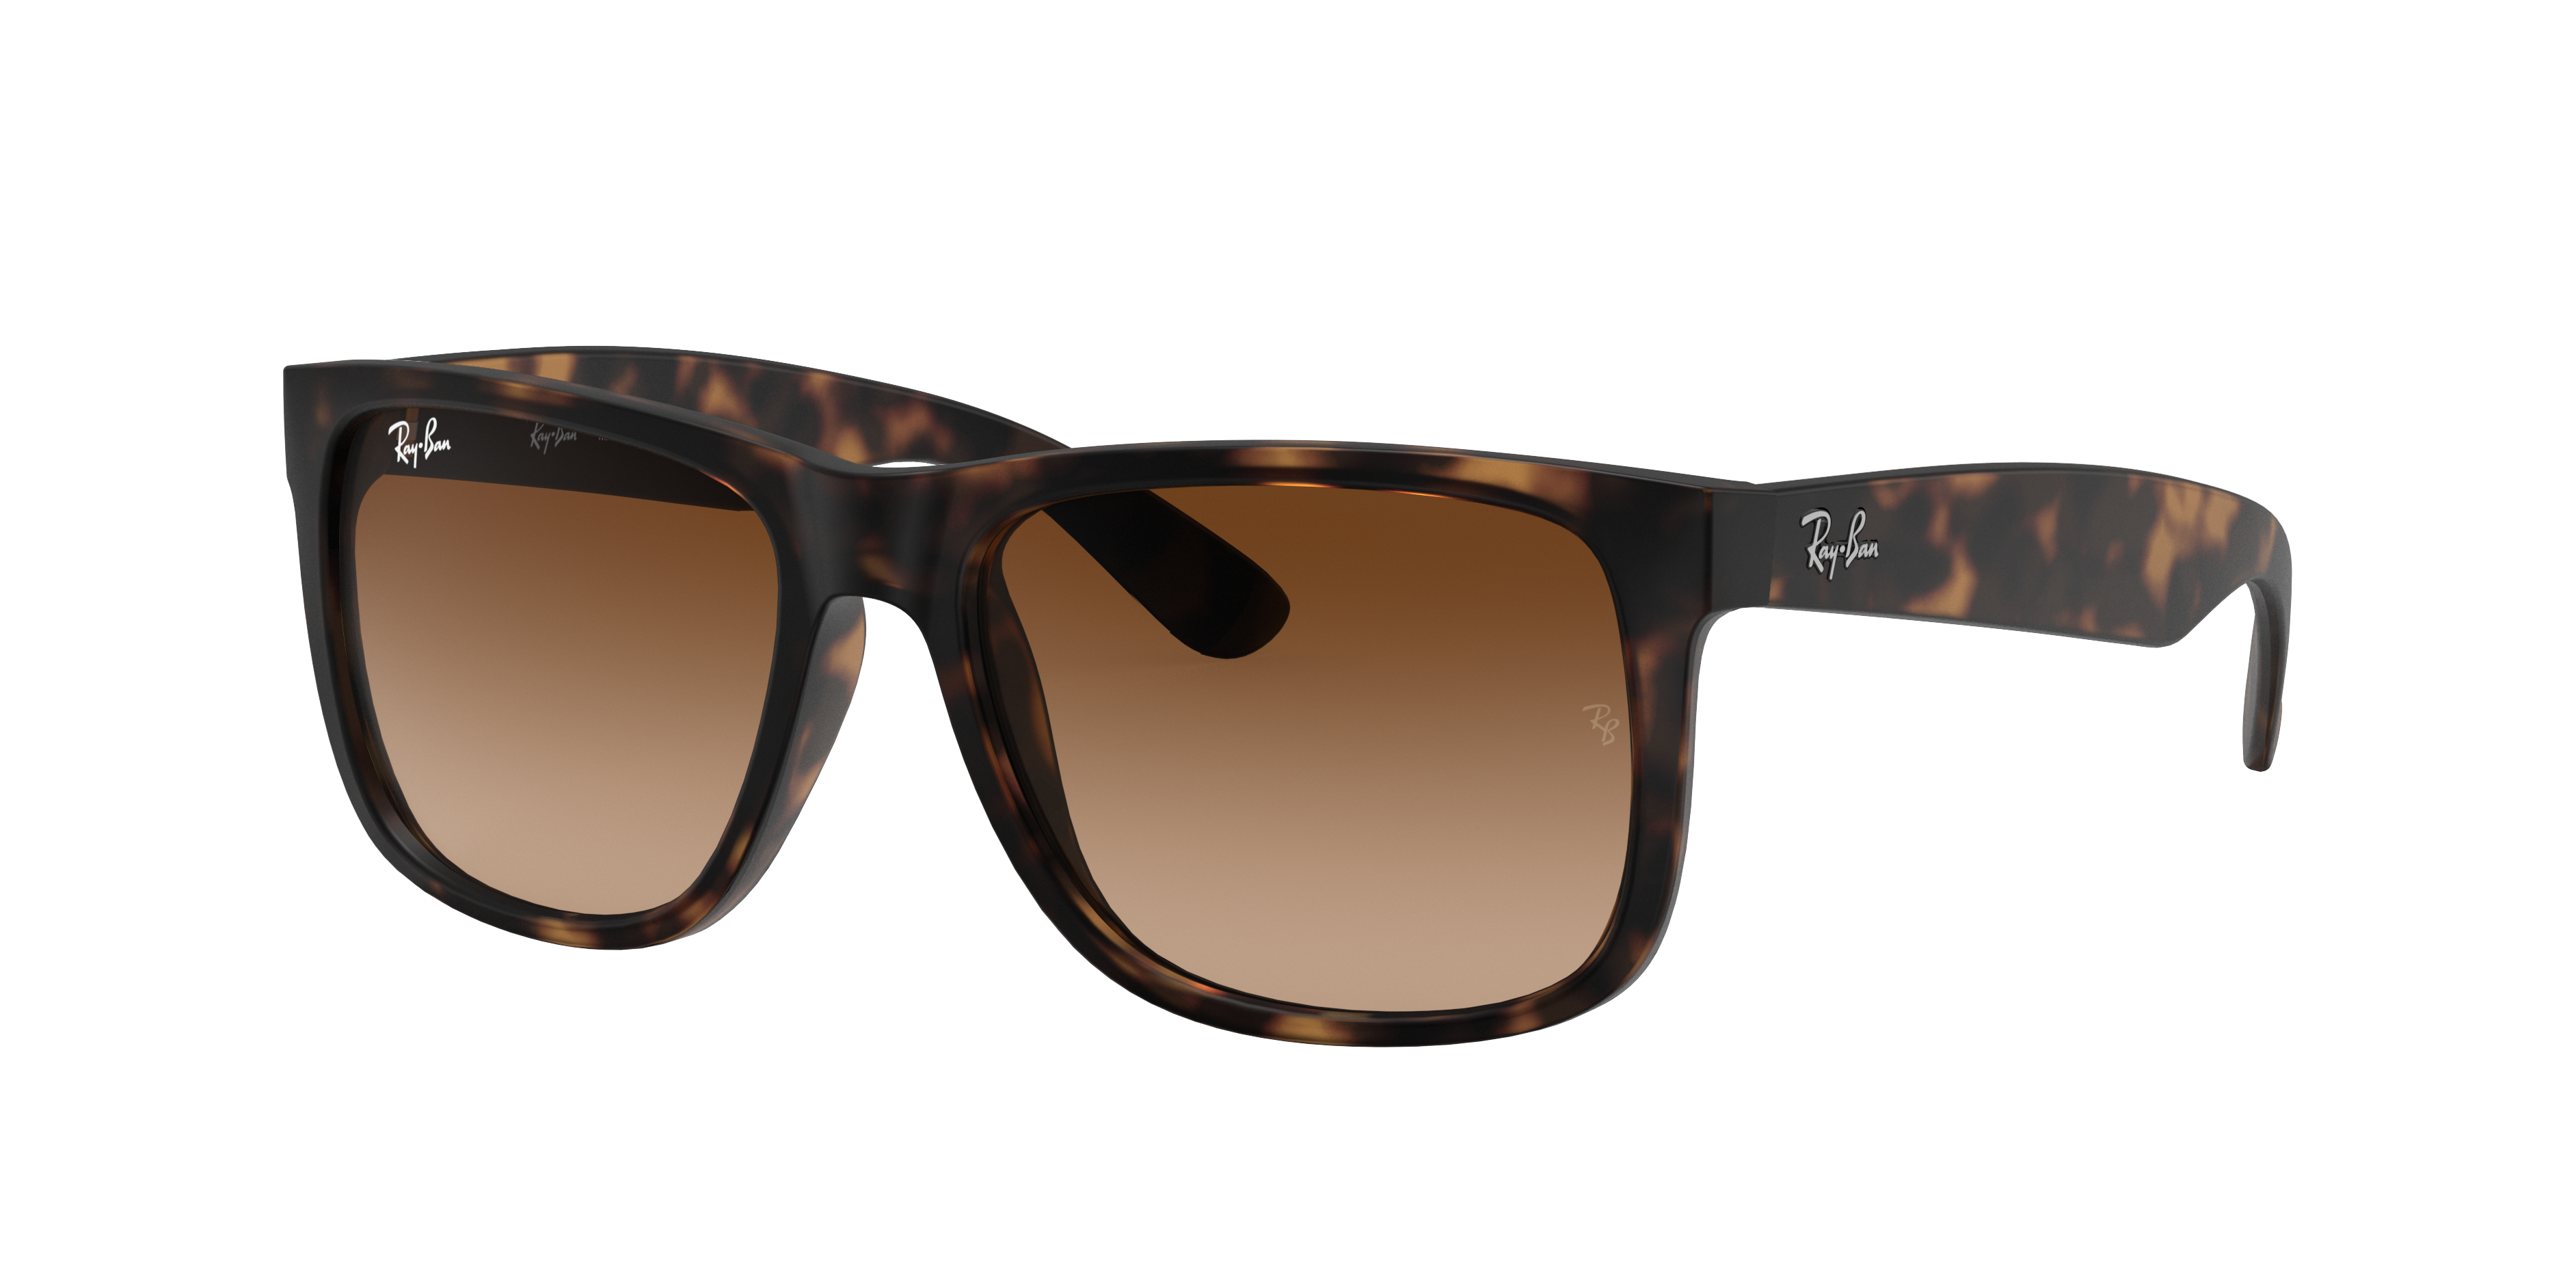 Ray-Ban Justin Classic Tortoise, Brown Lenses - RB4165